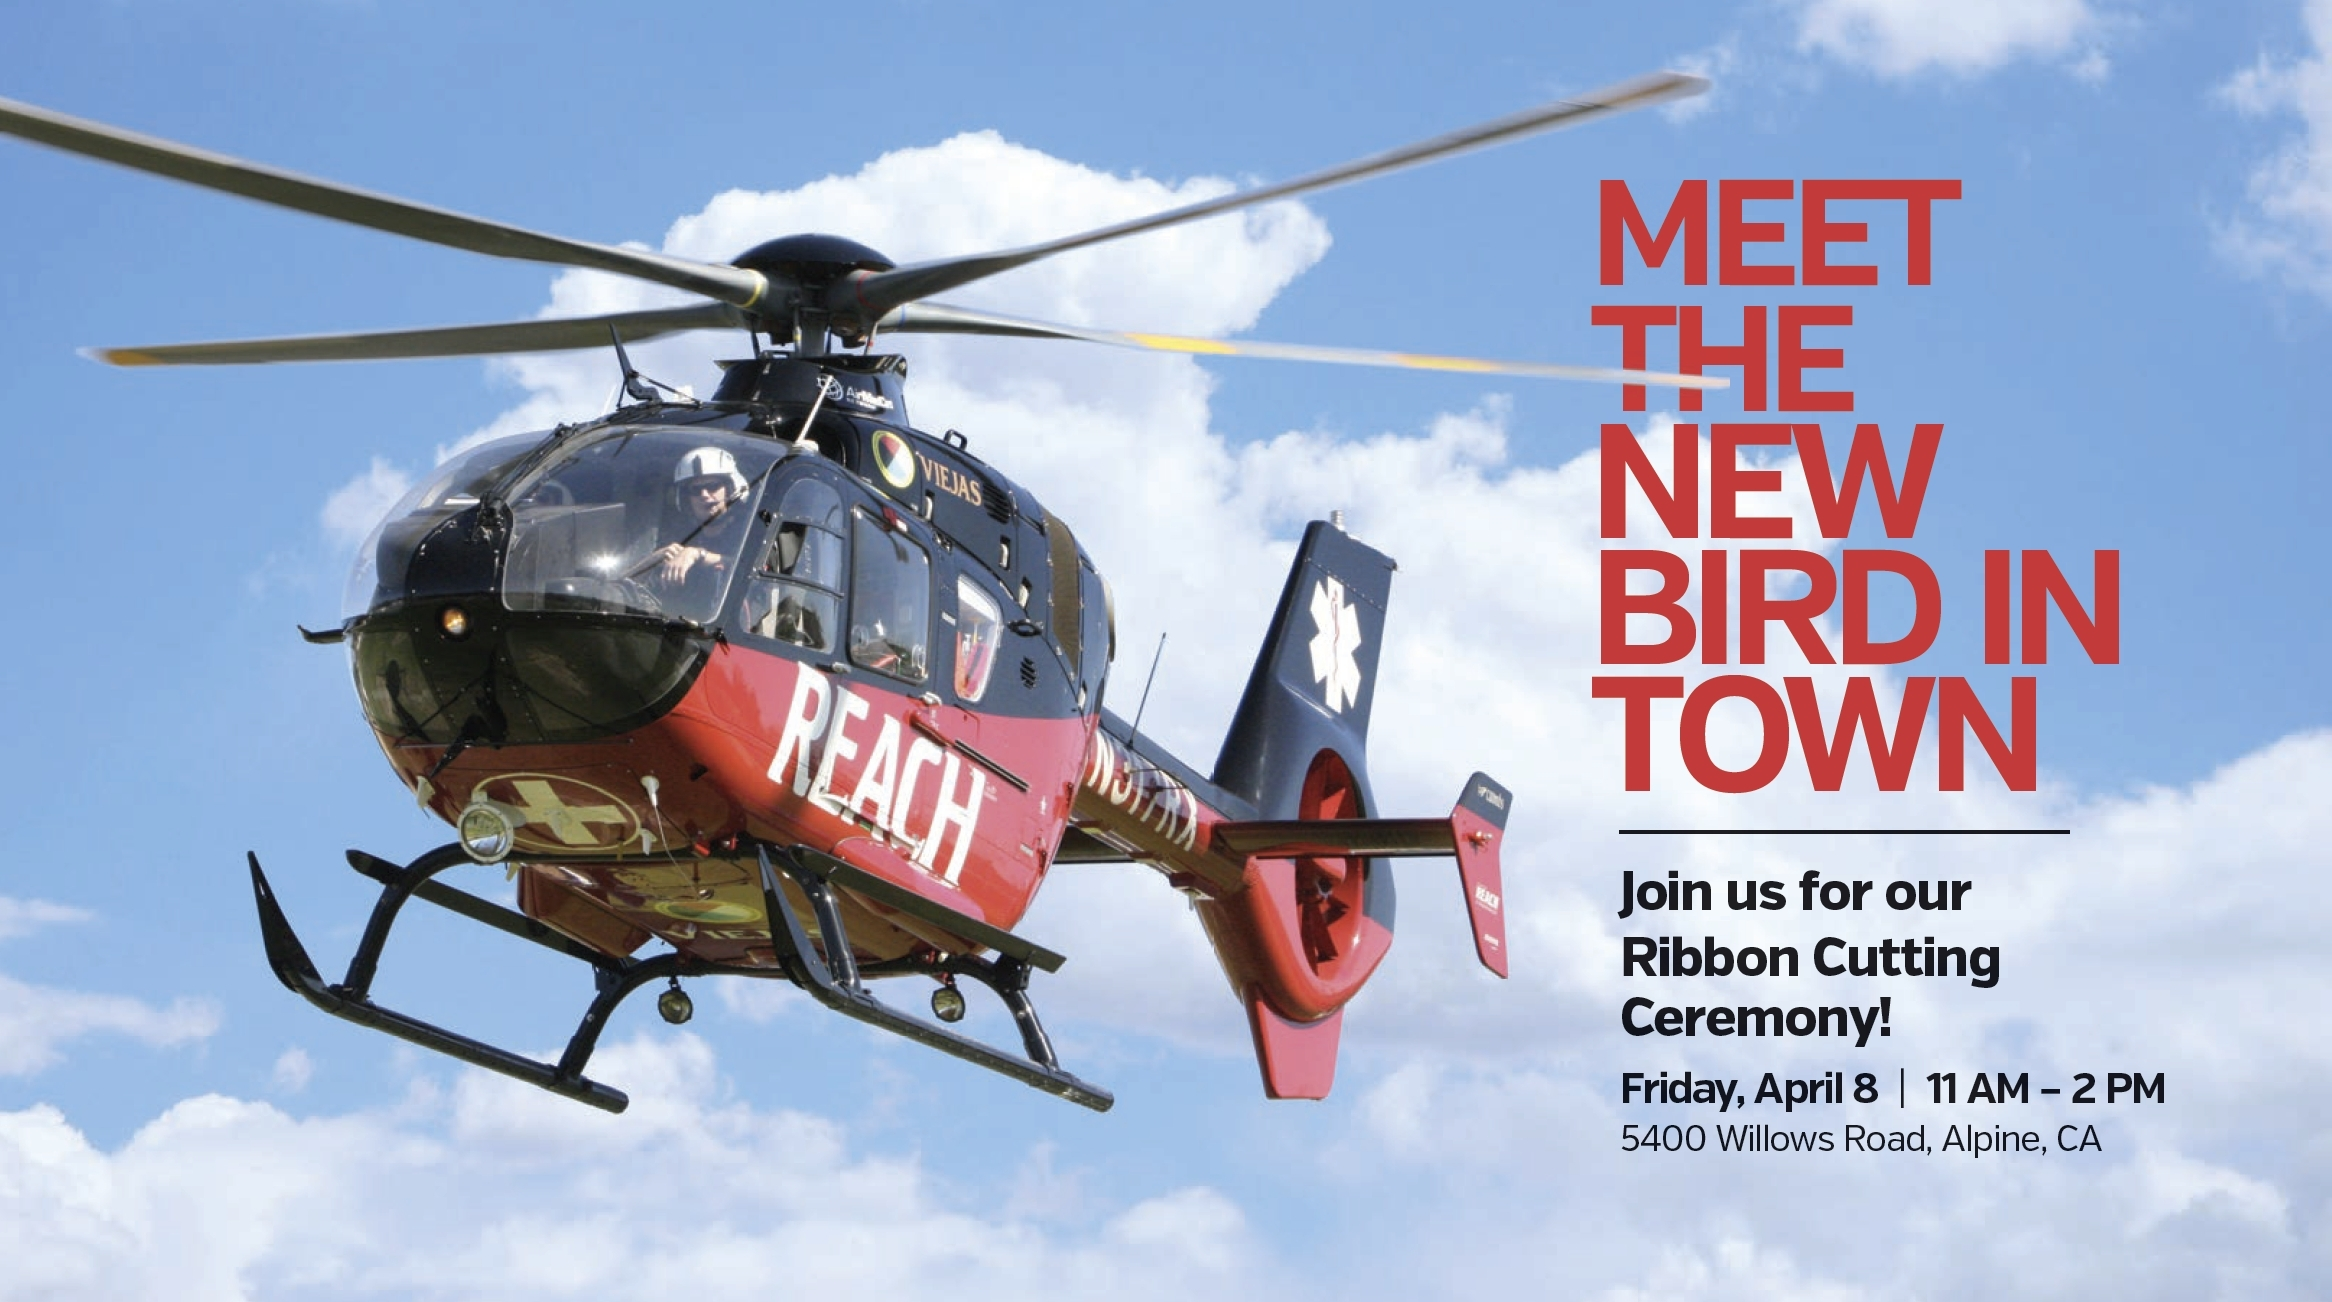 The event will feature aircraft on display from Reach Air as well as several dignitaries from the Tribe and Reach Air speaking to the partnership. (Graphic: Business Wire)